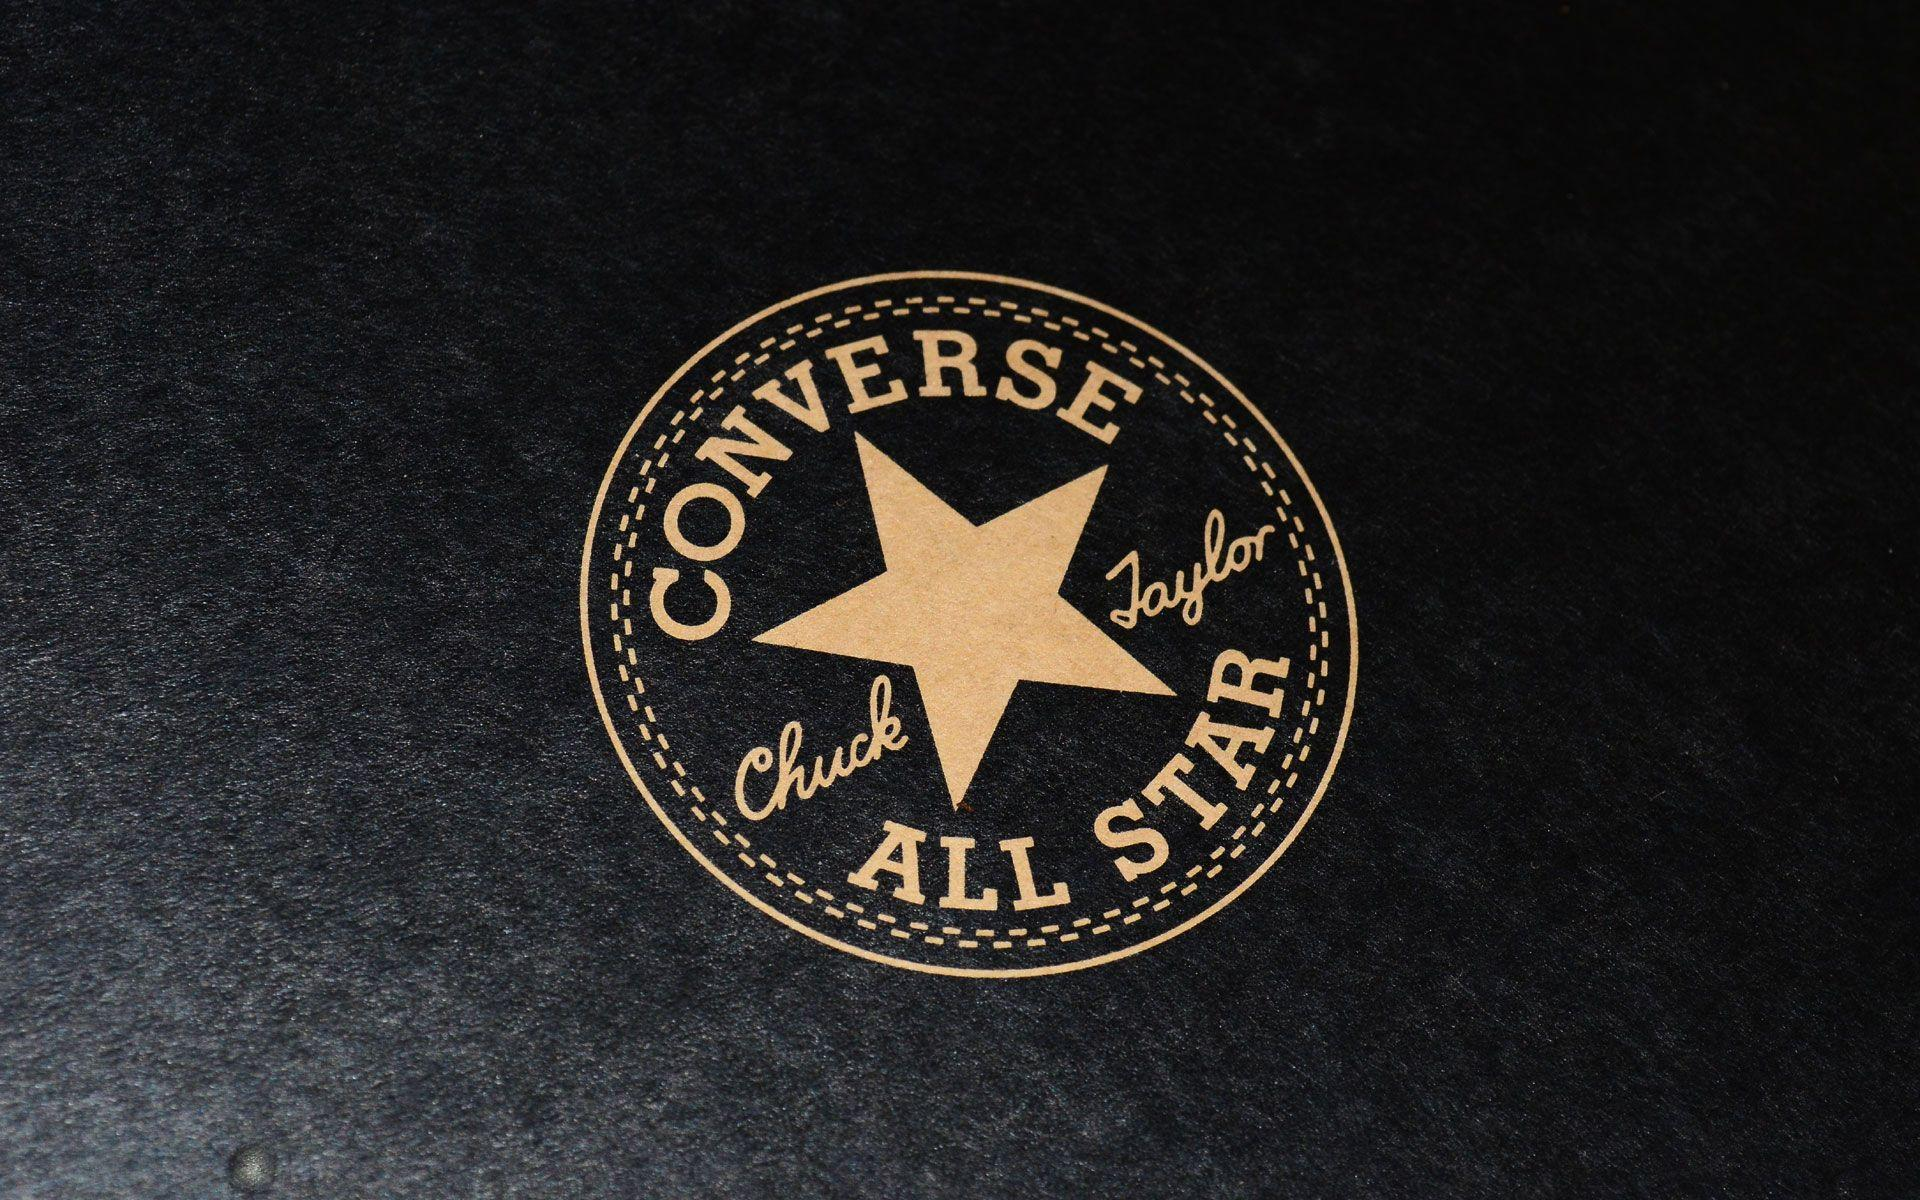 All Love Wallpaper Images : converse All Star Wallpapers - Wallpaper cave